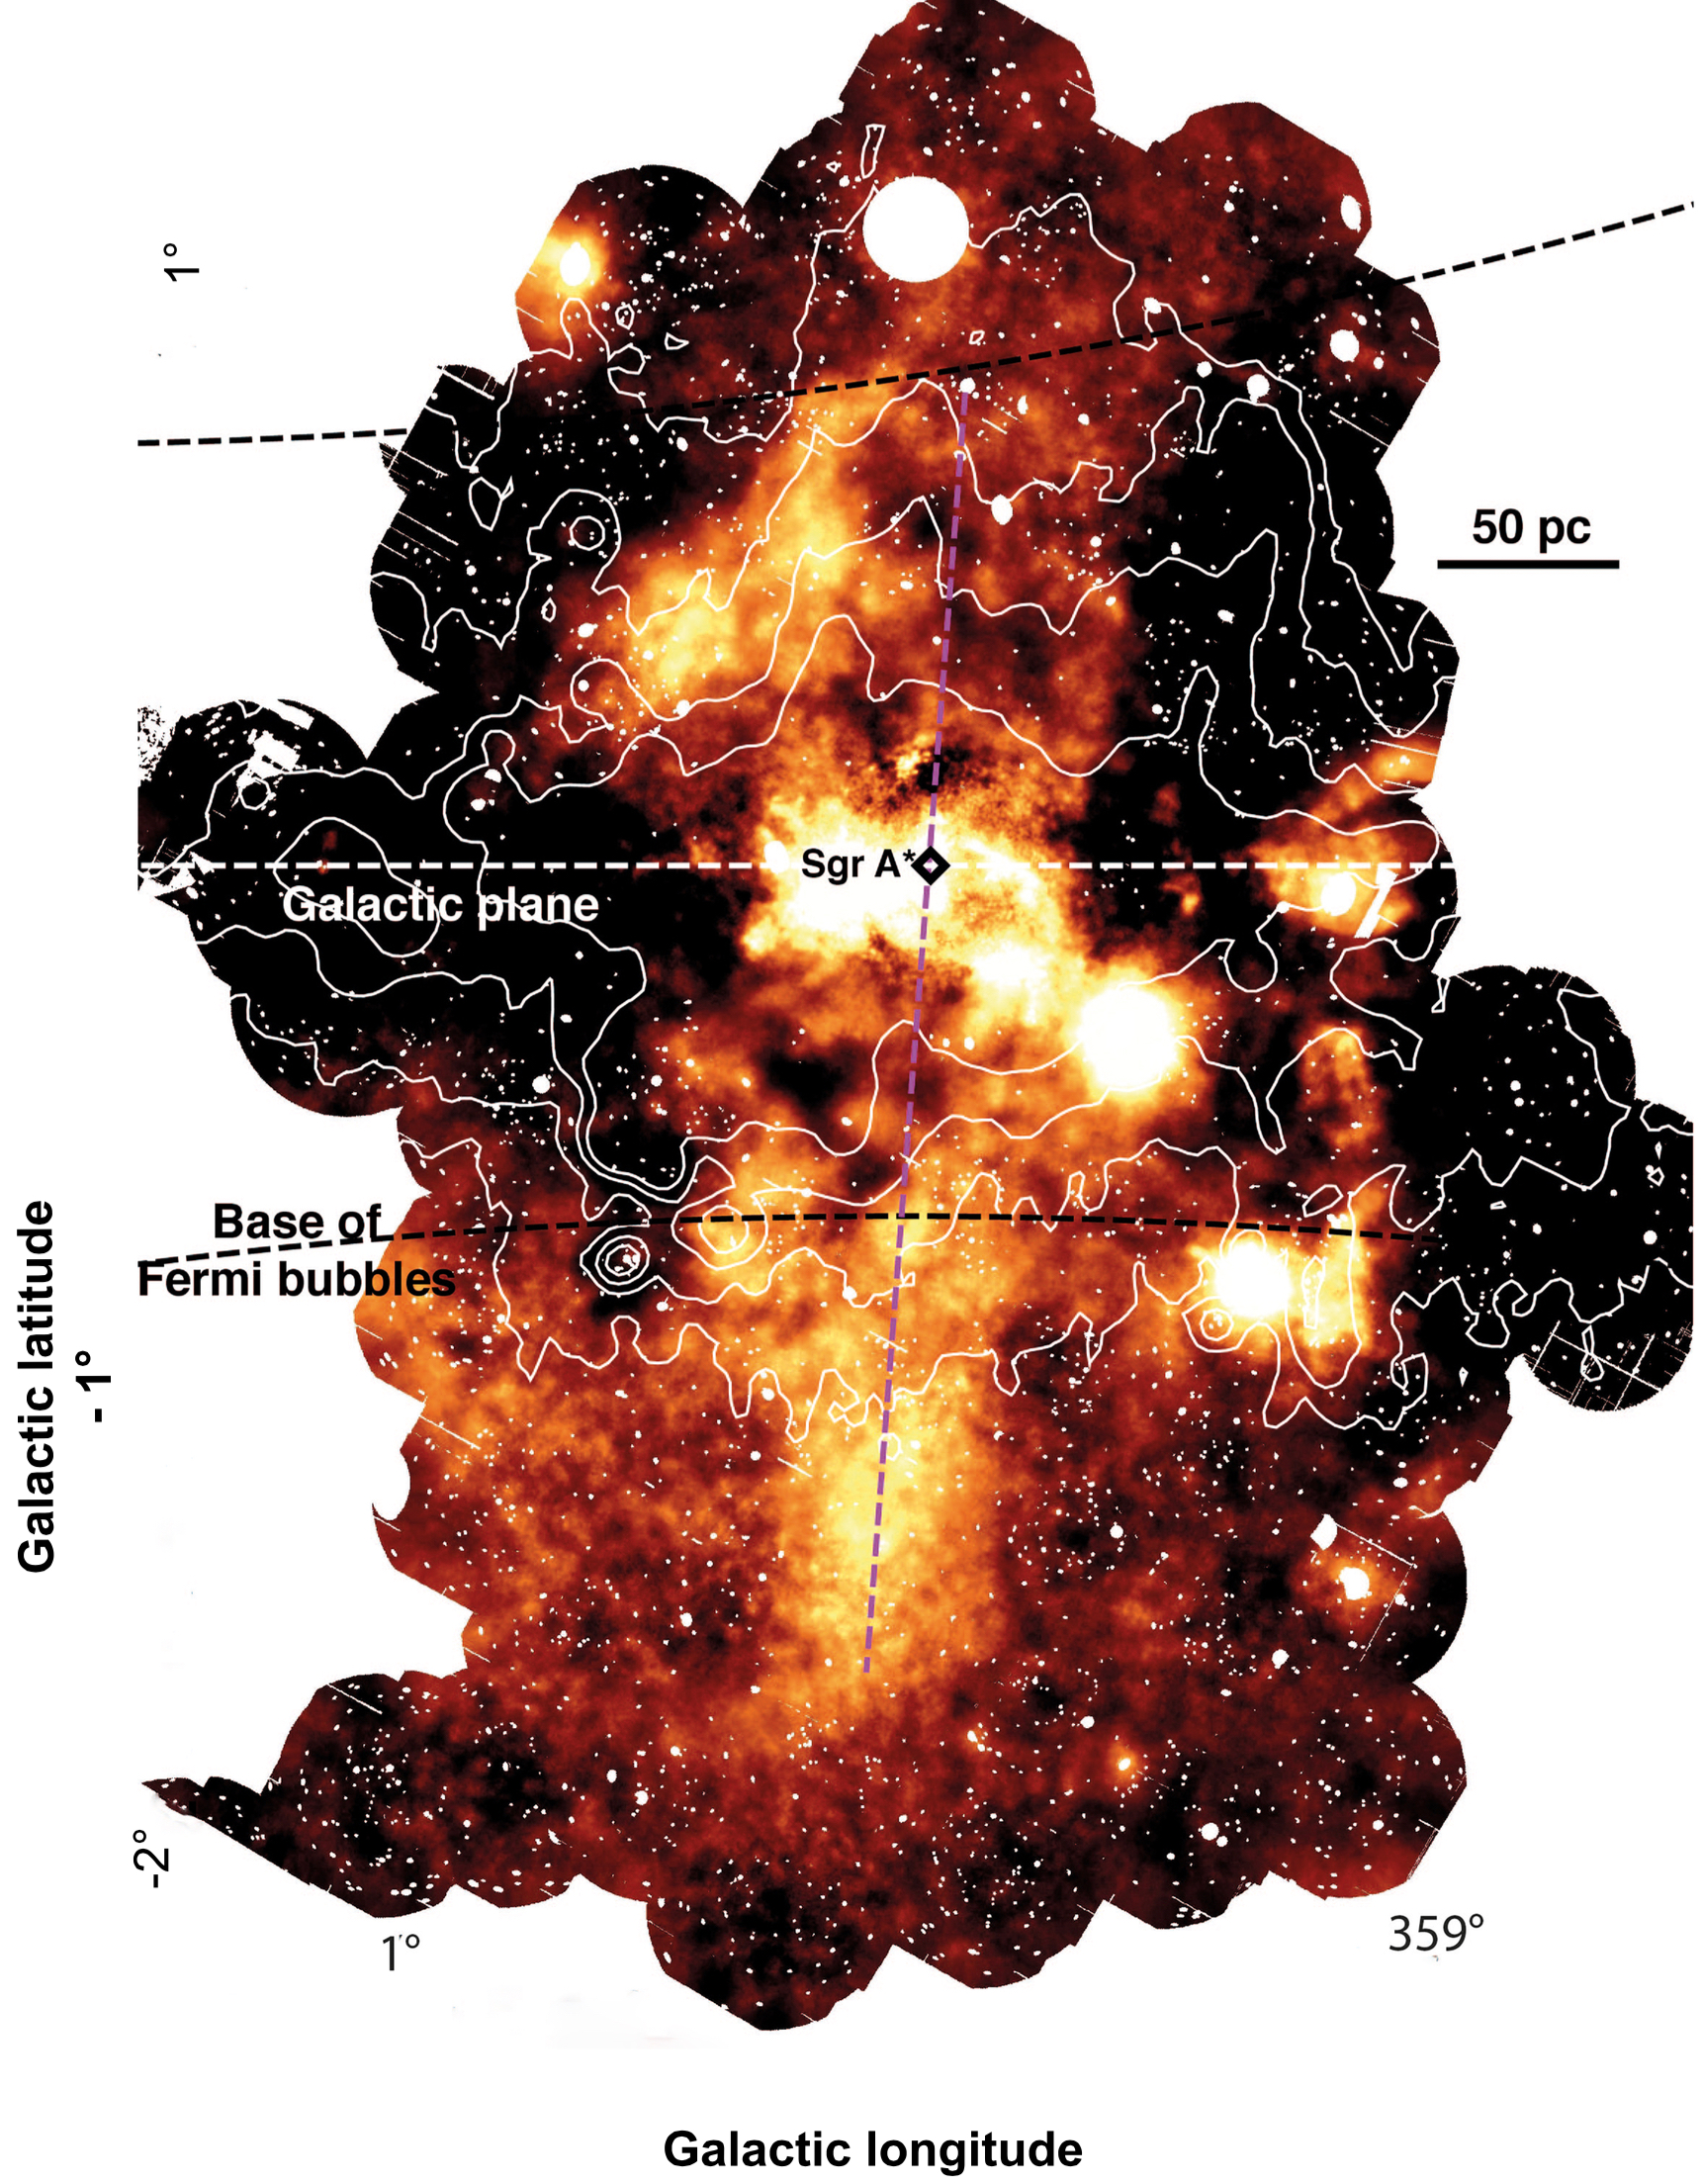 The X-ray scan (1.5-2.6 keV energy band) of the Galactic Center Radio lobe and of a symmetric region south of the Milky Way plane.